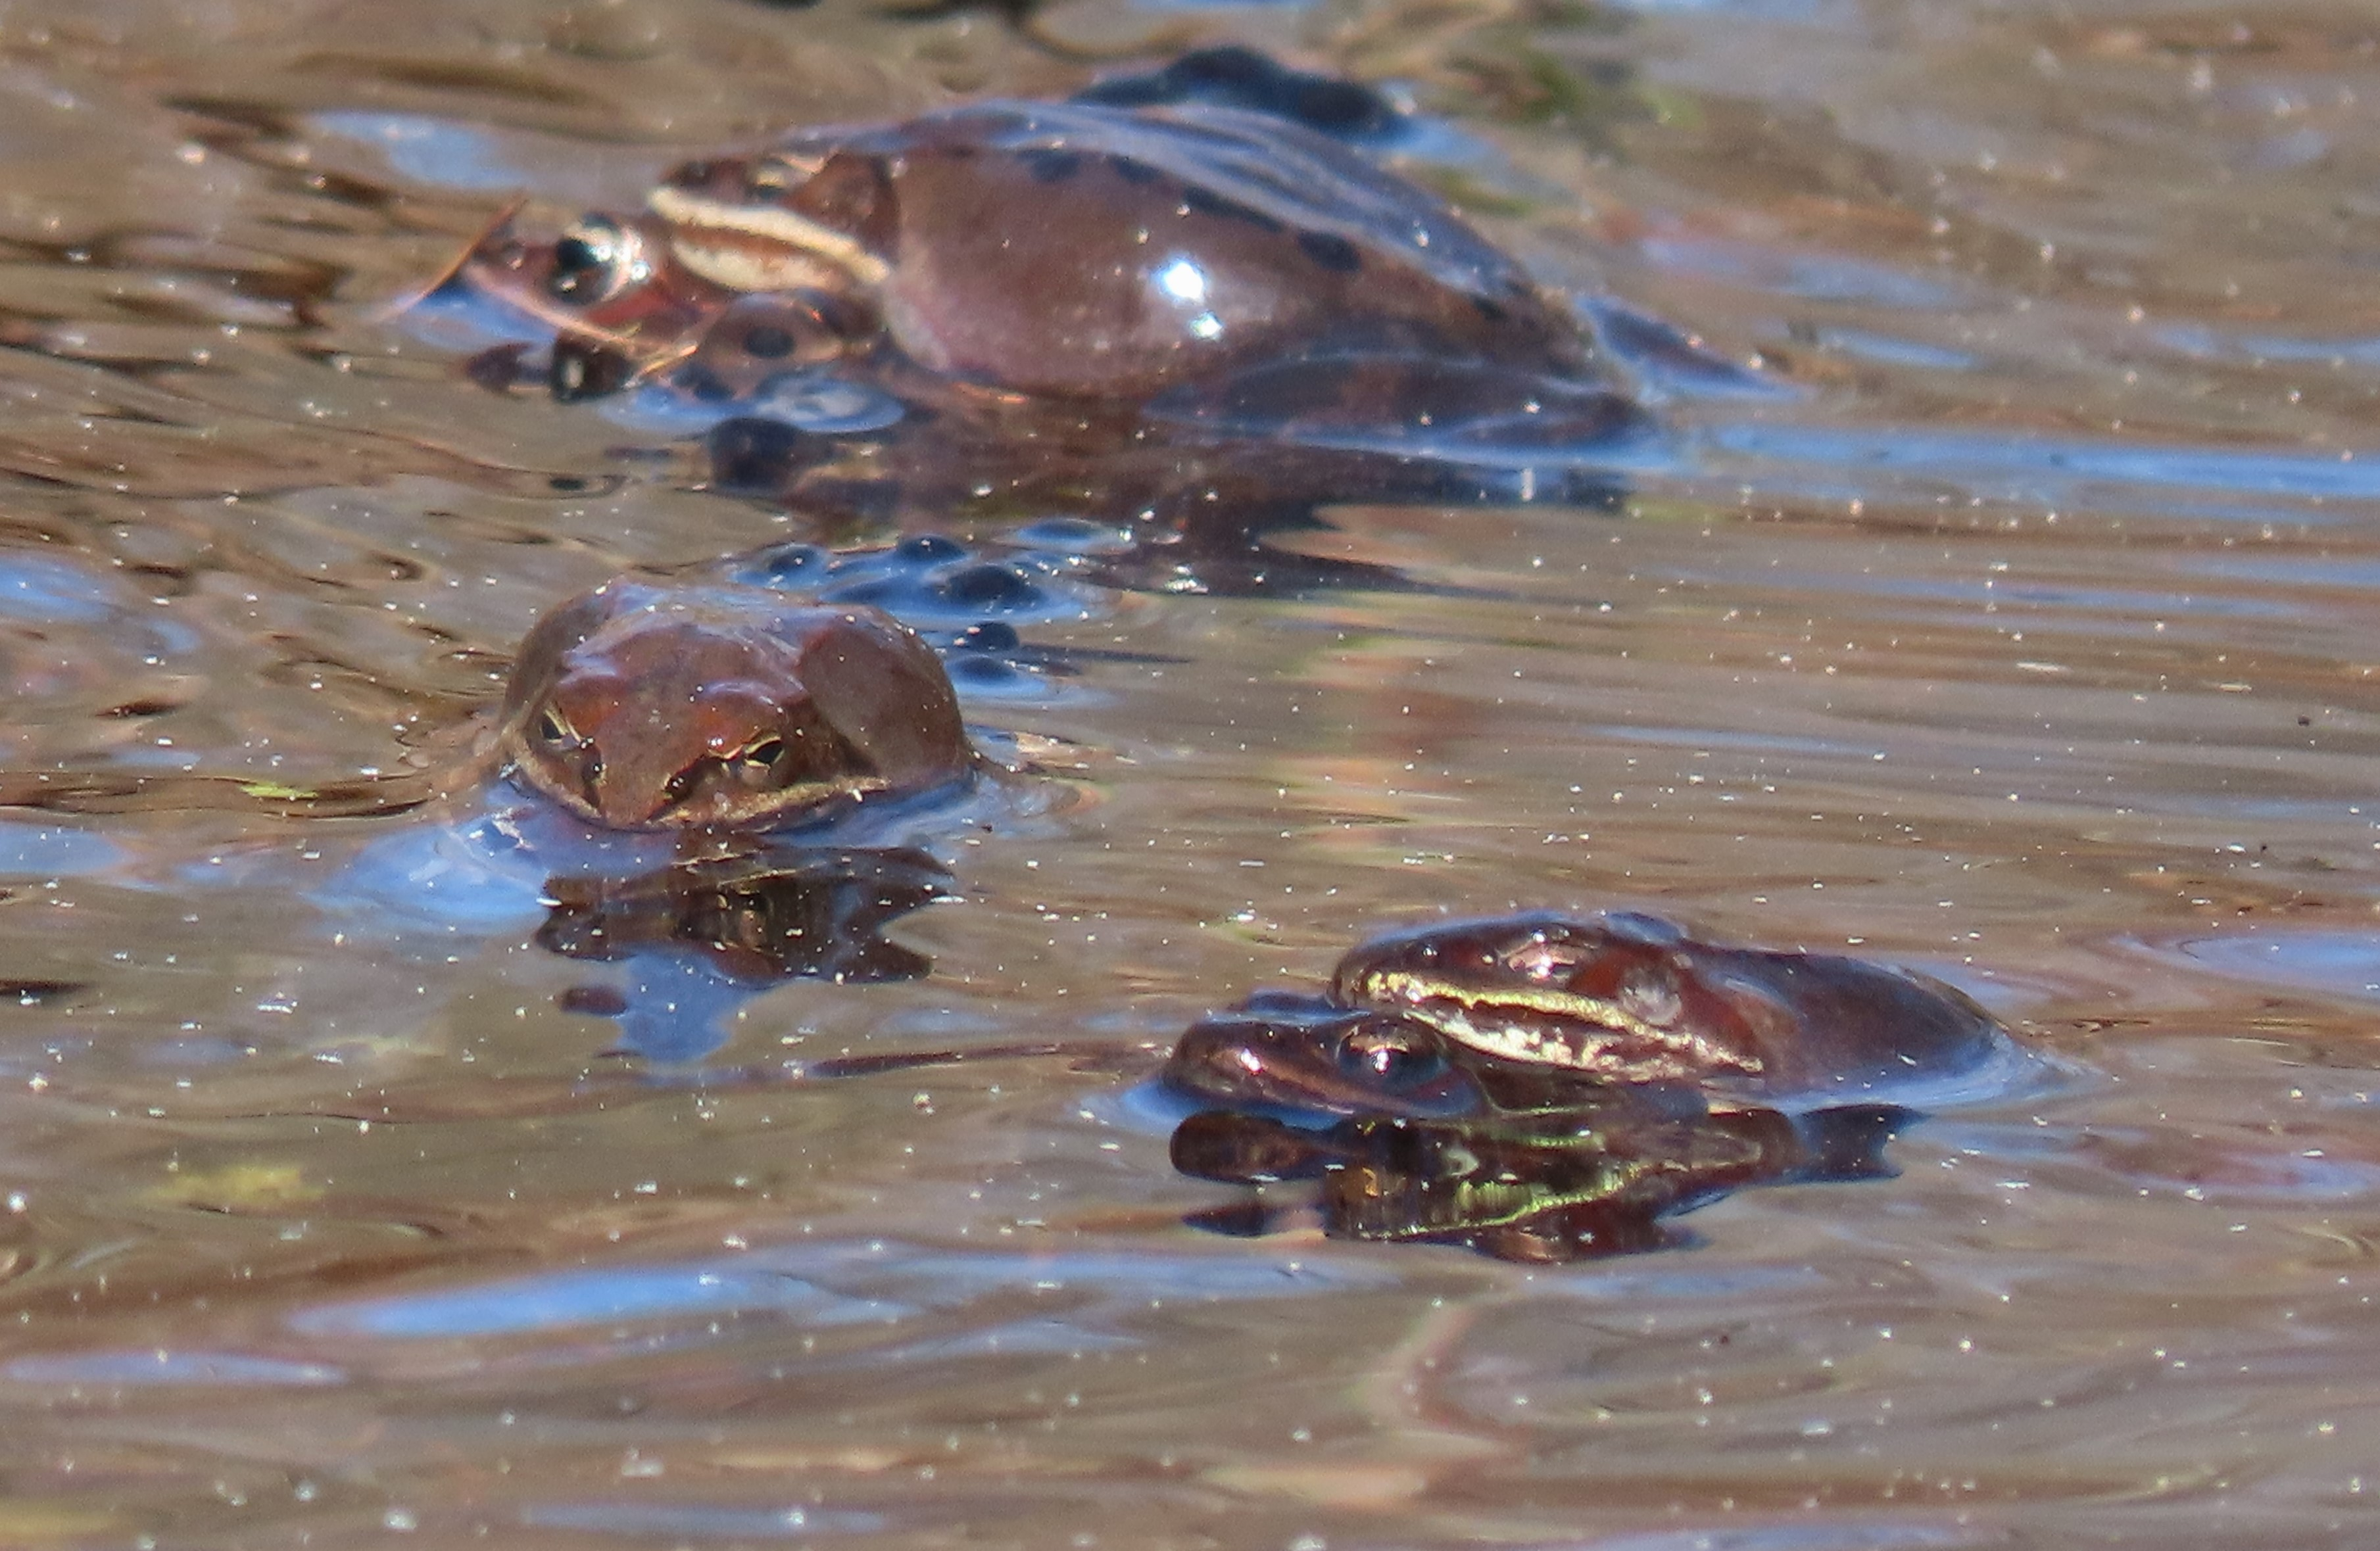 Three mating wood frog couples in a pond